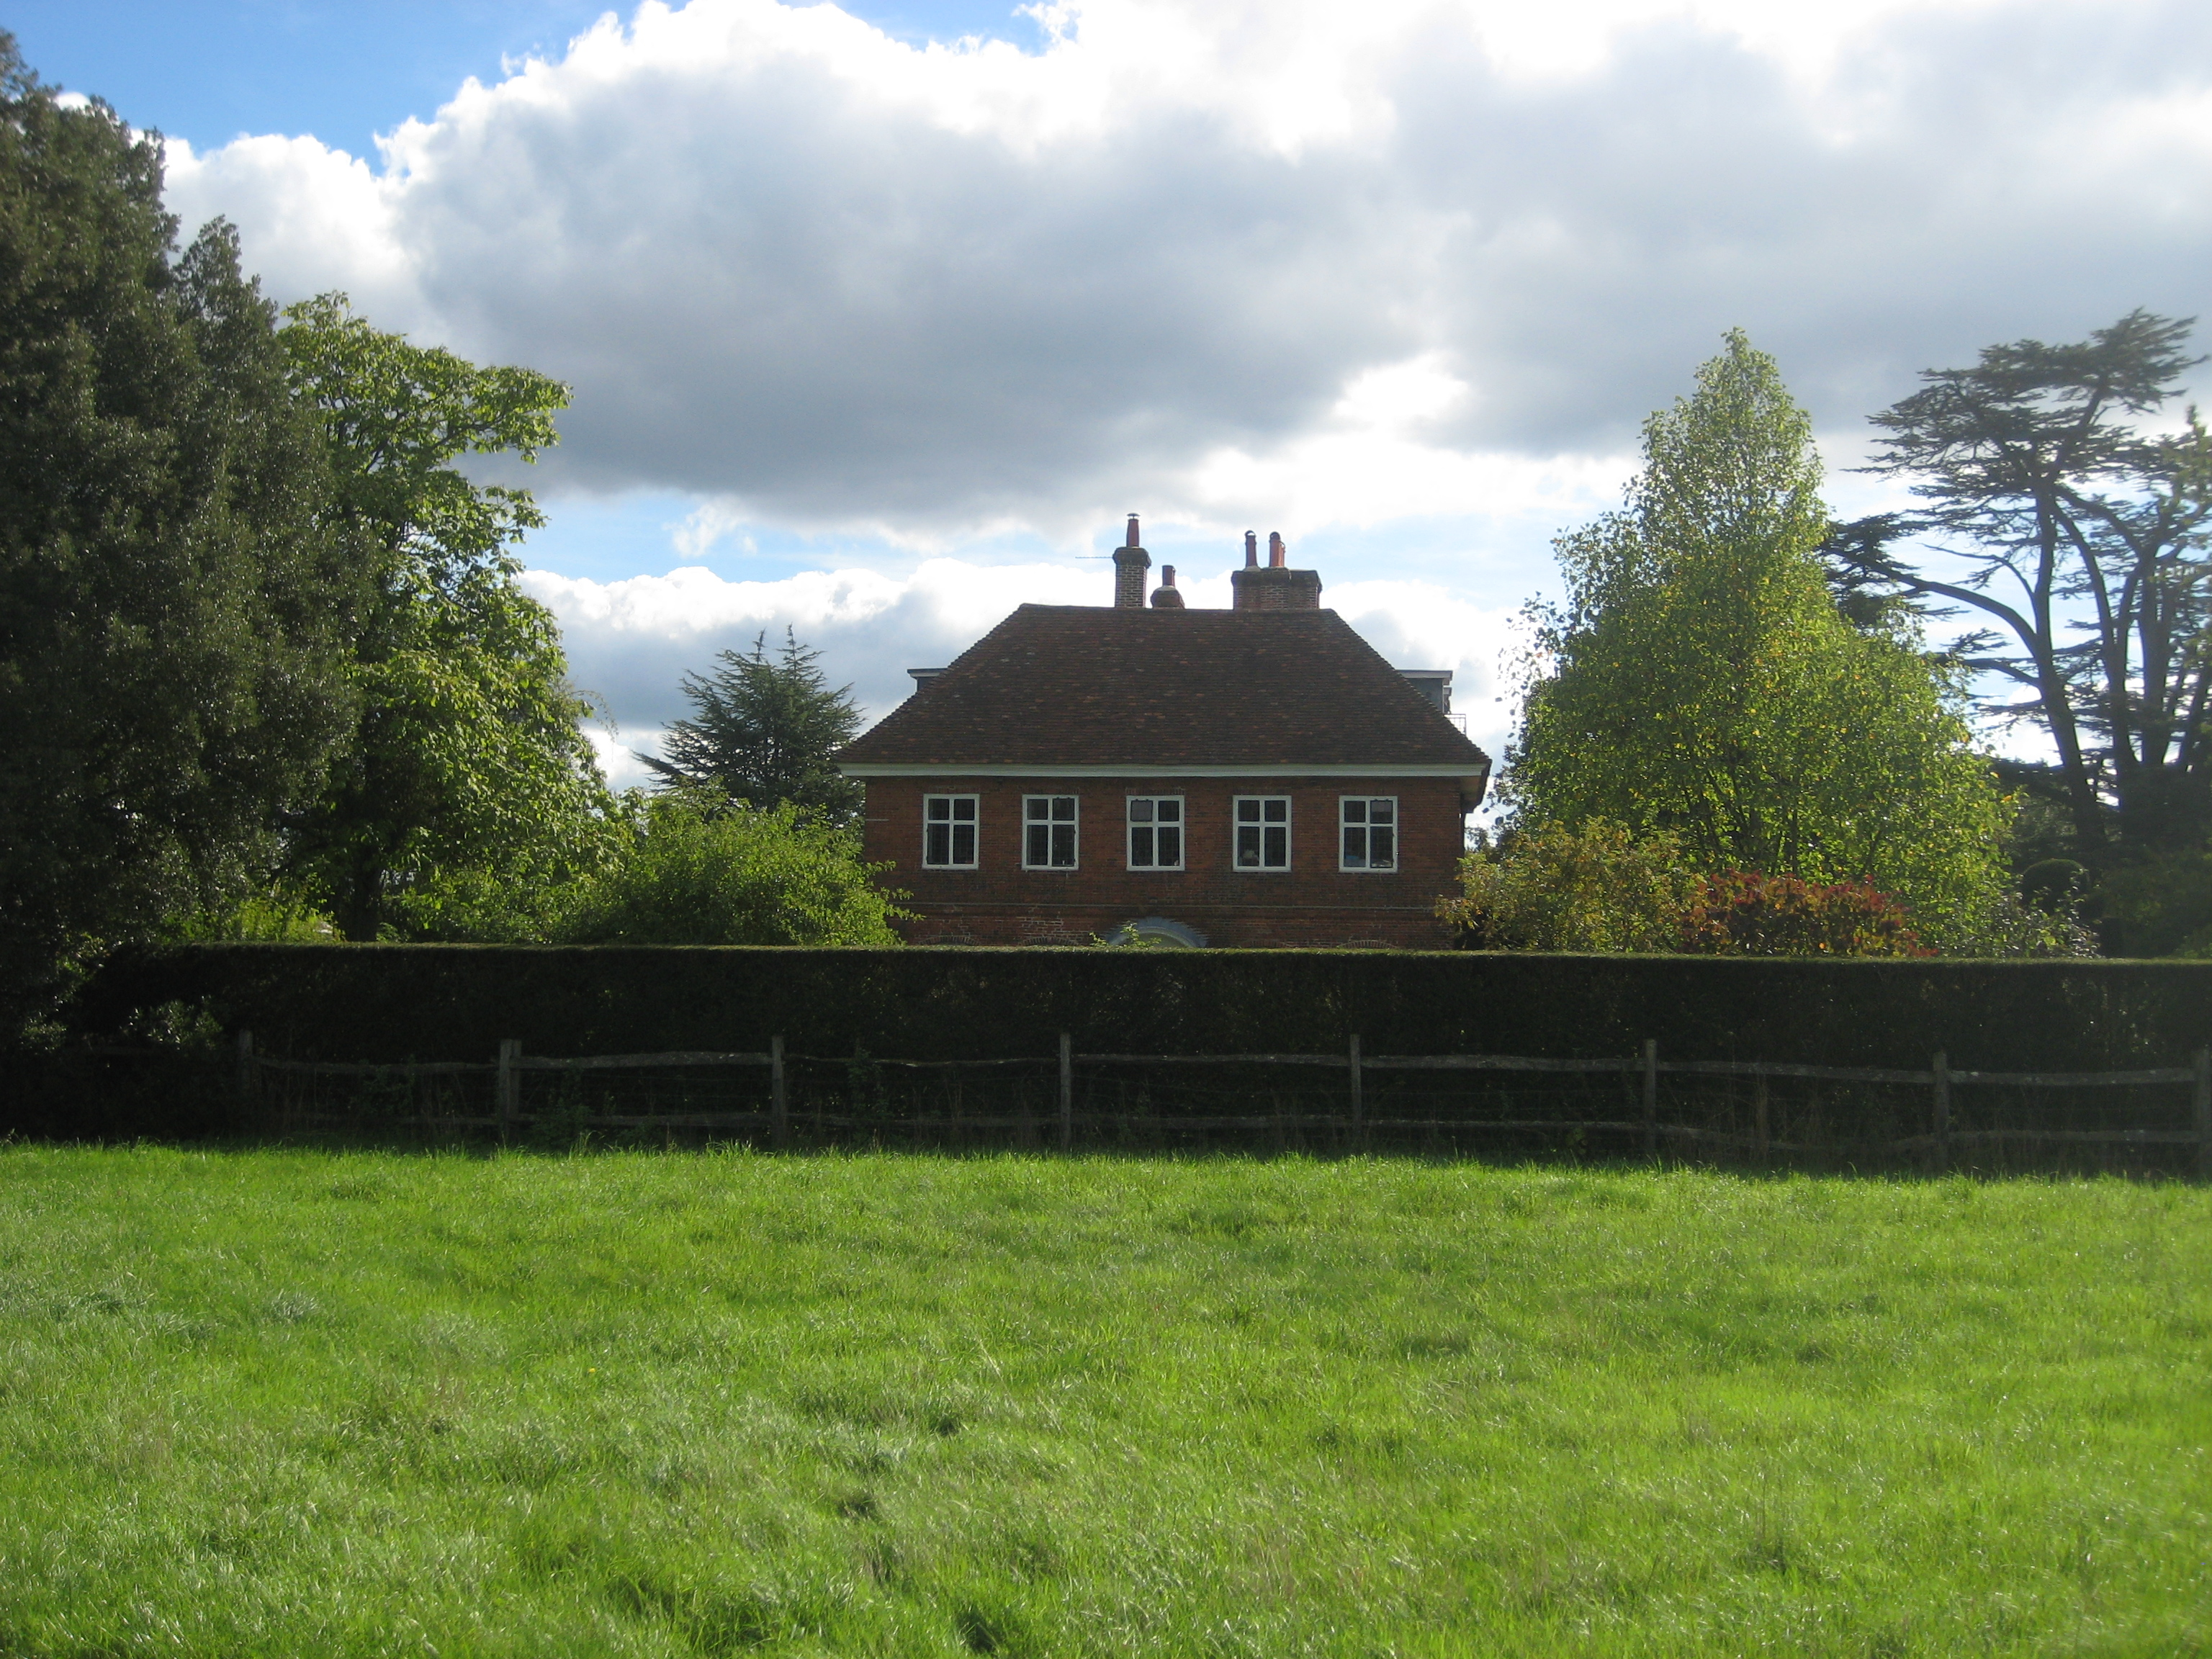 FileRangers House Farnham Park